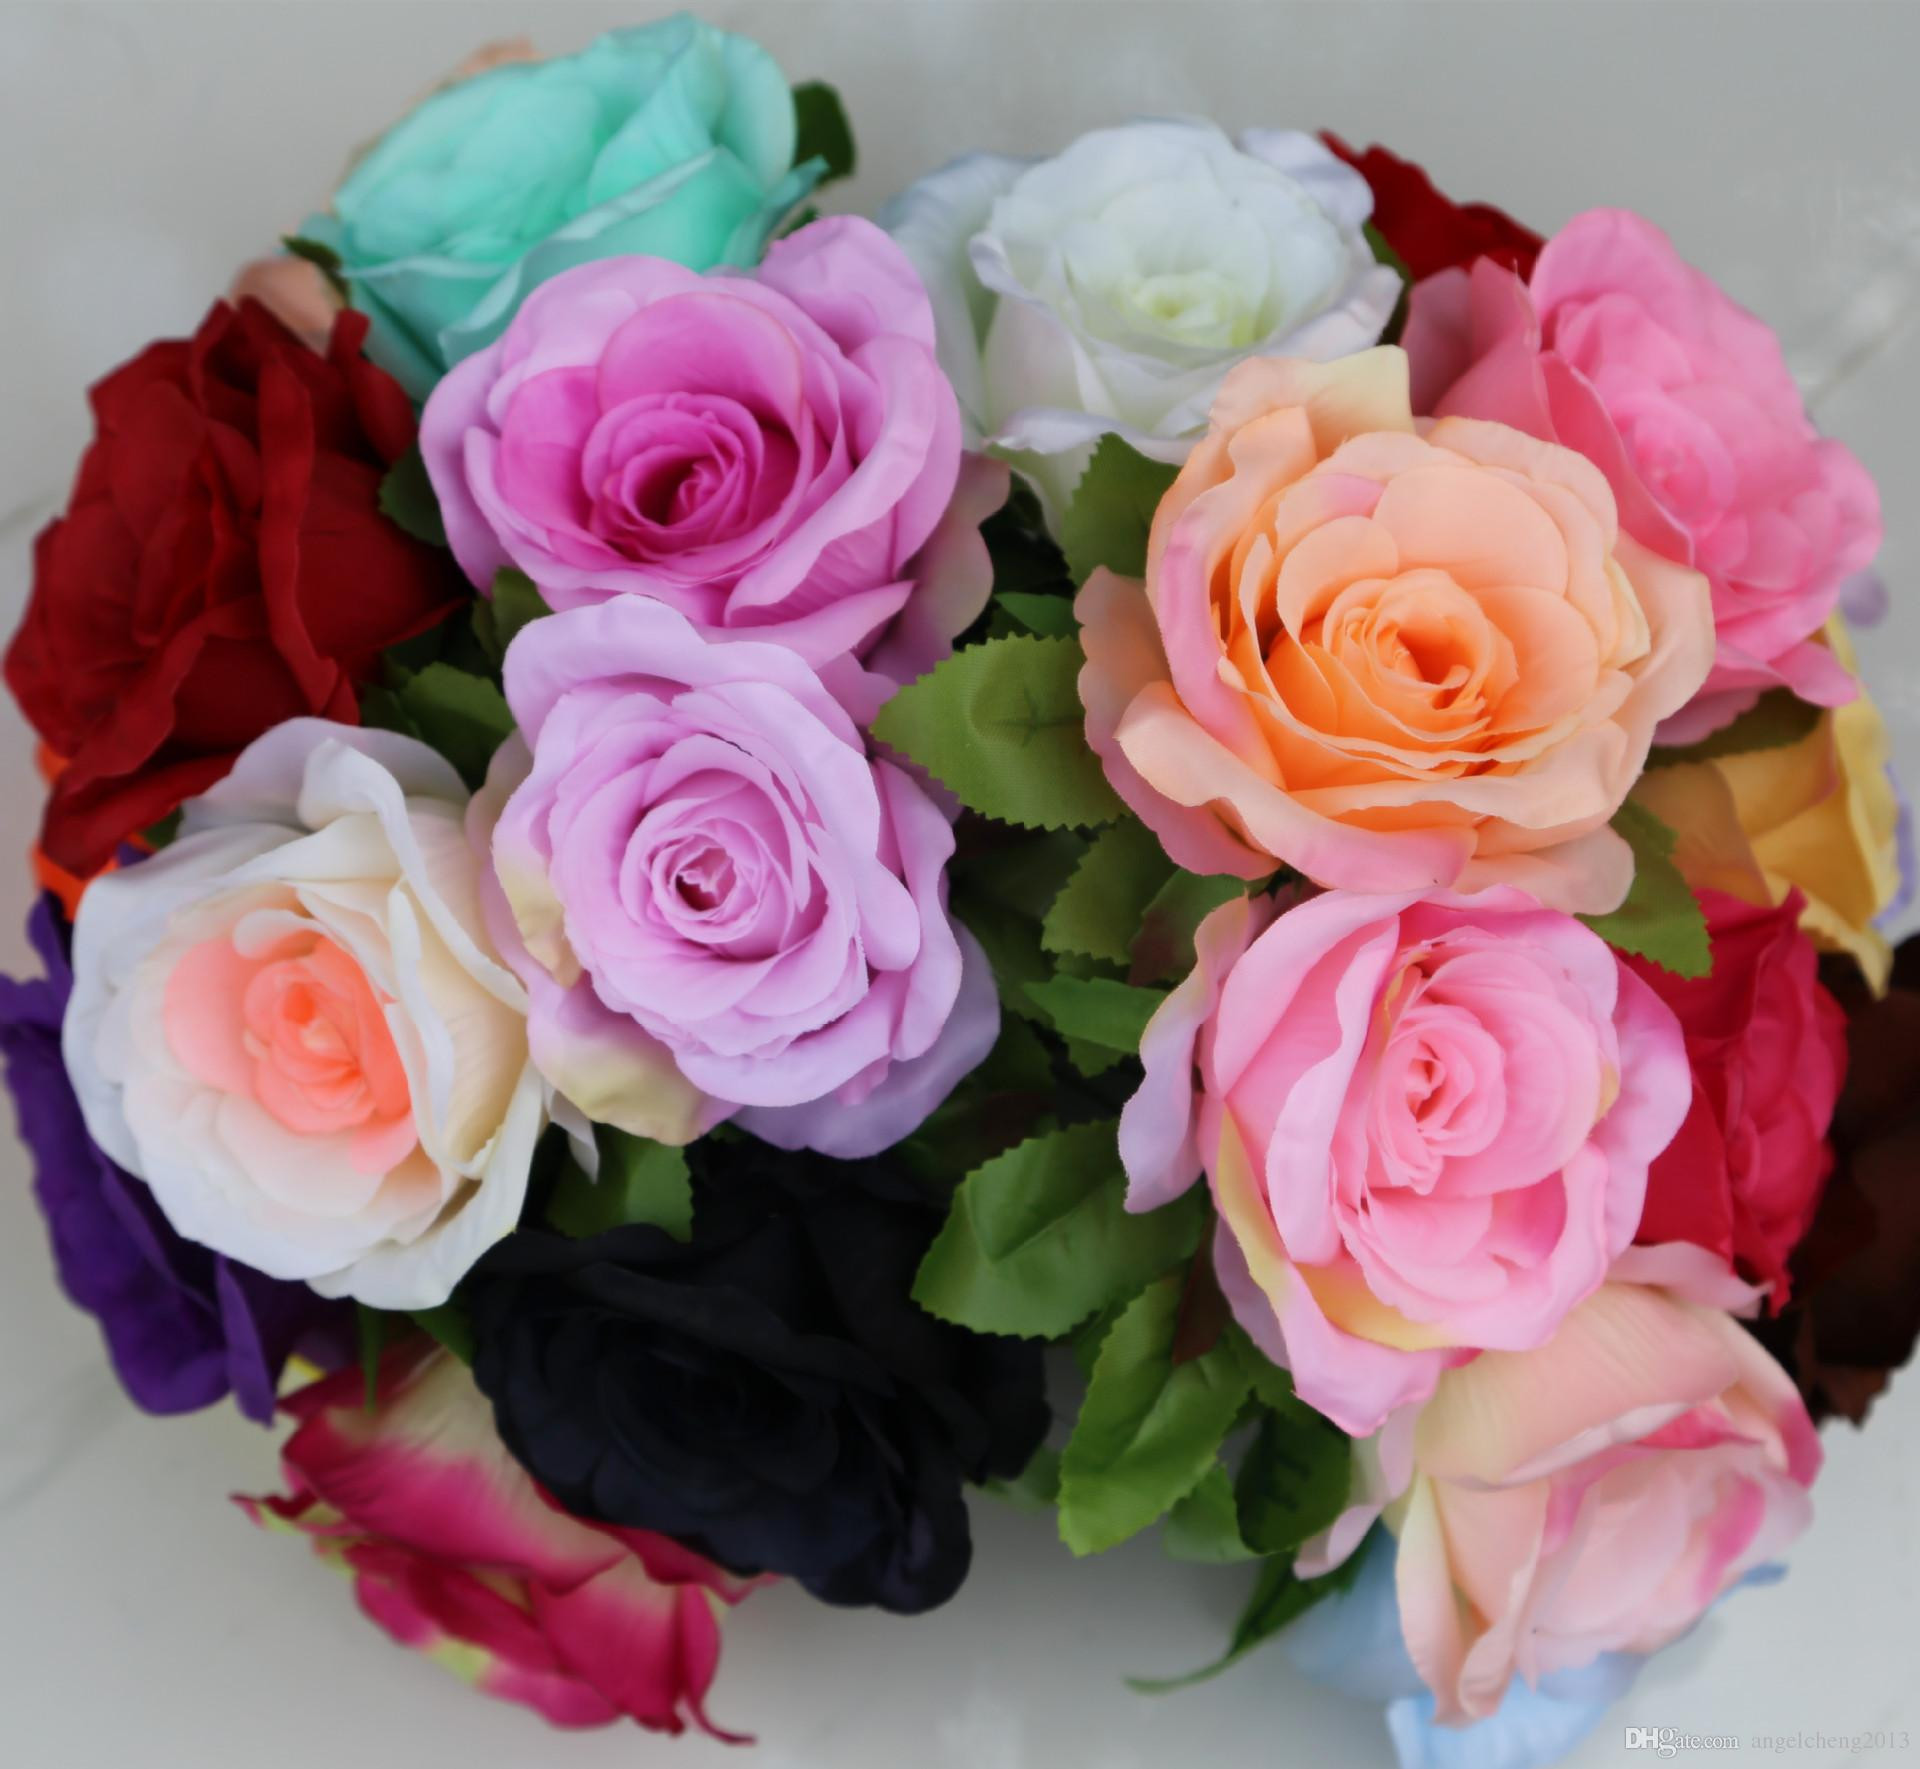 Artificial Flowers Silk Roses Bouquet Home Wedding Decoration Pack of 24 Colour Select HB 032 Artificial Flowers Silk Roses Wedding Party Gift line with